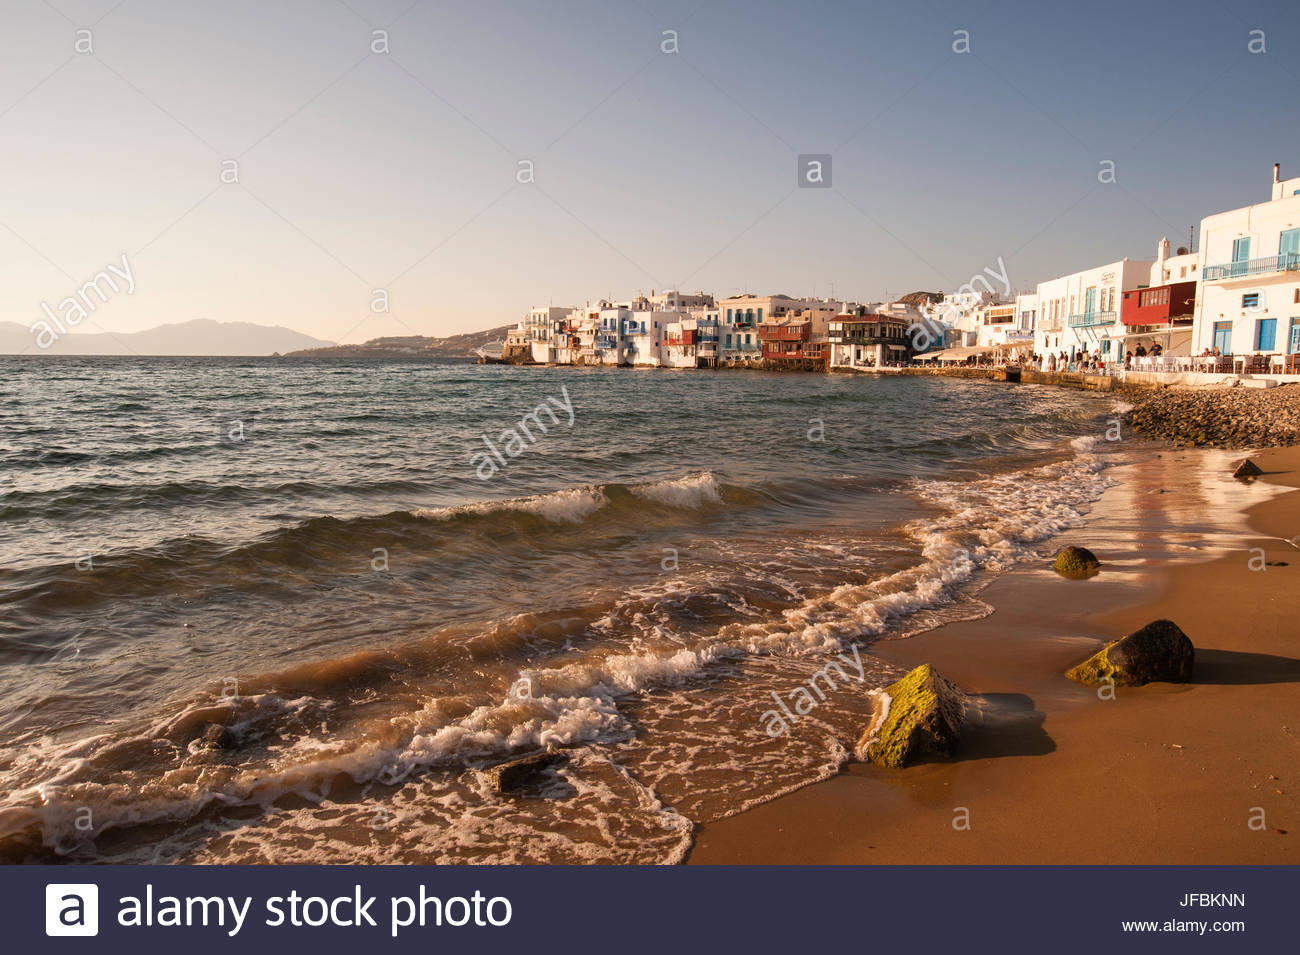 A shoreline view of the Little Venice neighborhood, and gentle surf. - Stock Image